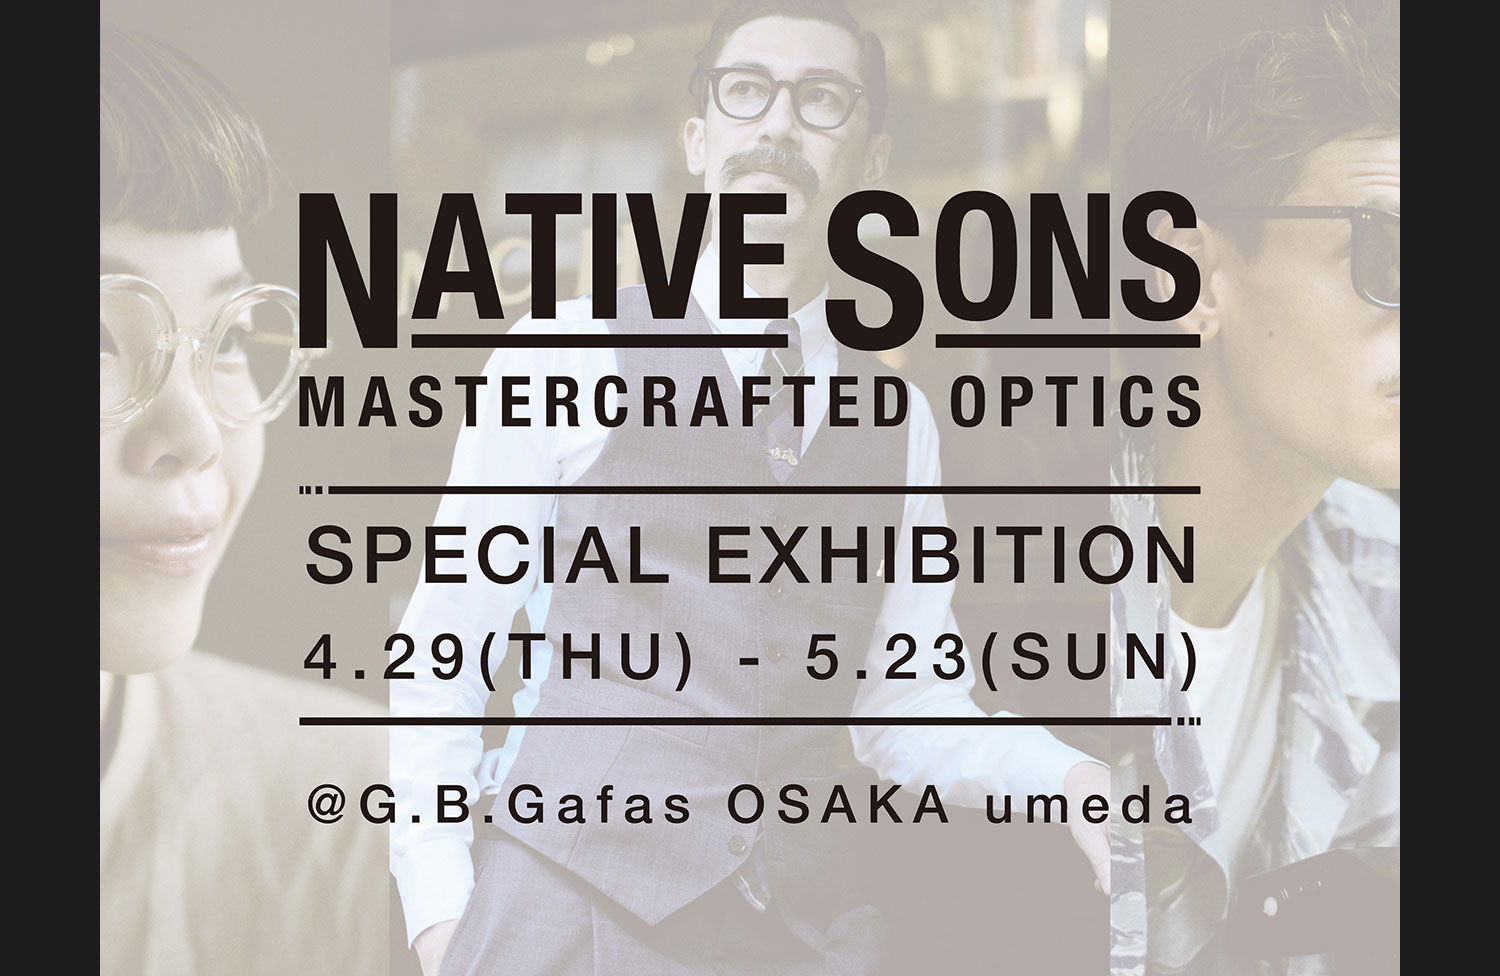 NATIVE SONS SPECIAL EXHIBITION@G.B.Gafas OSAKA umeda